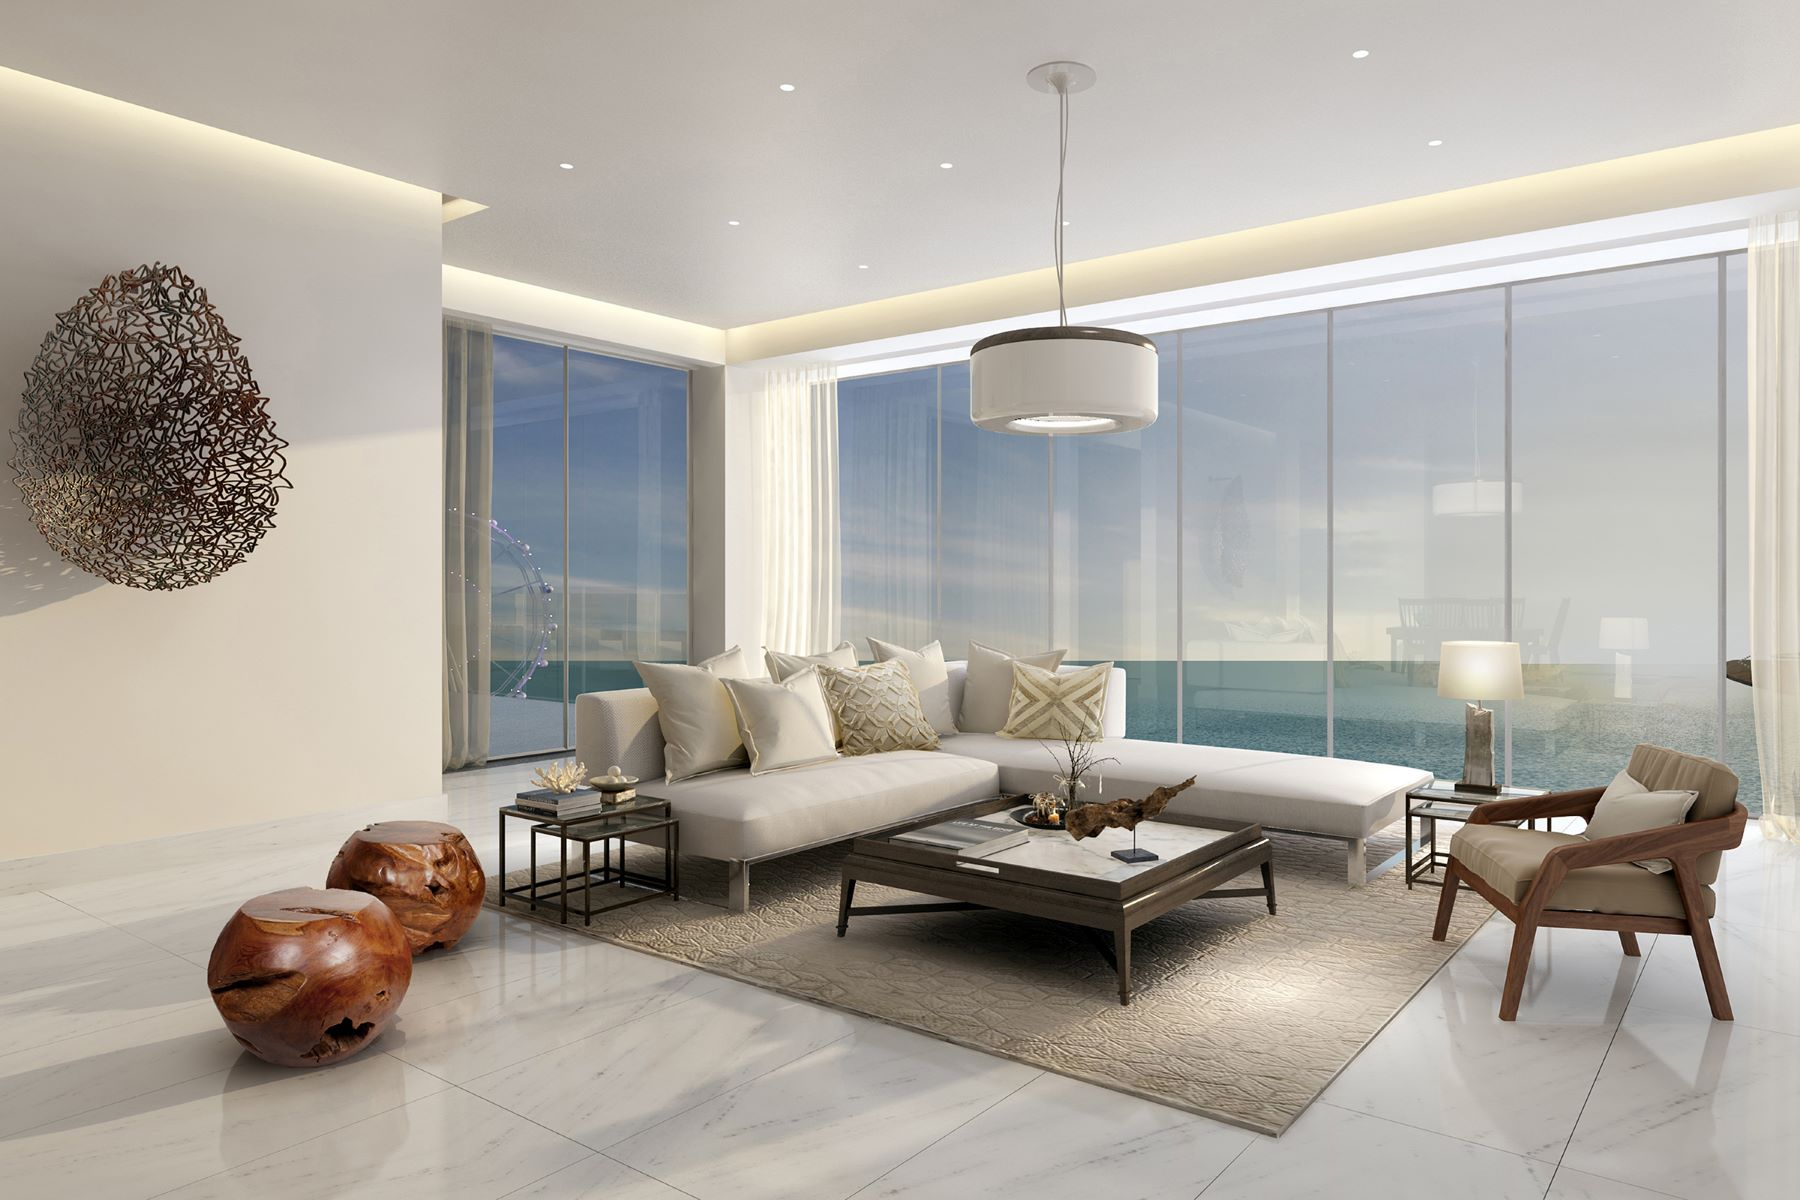 Apartment for Sale at 1/JBR High-floor Apartment with Sea View Other Dubai, United Arab Emirates